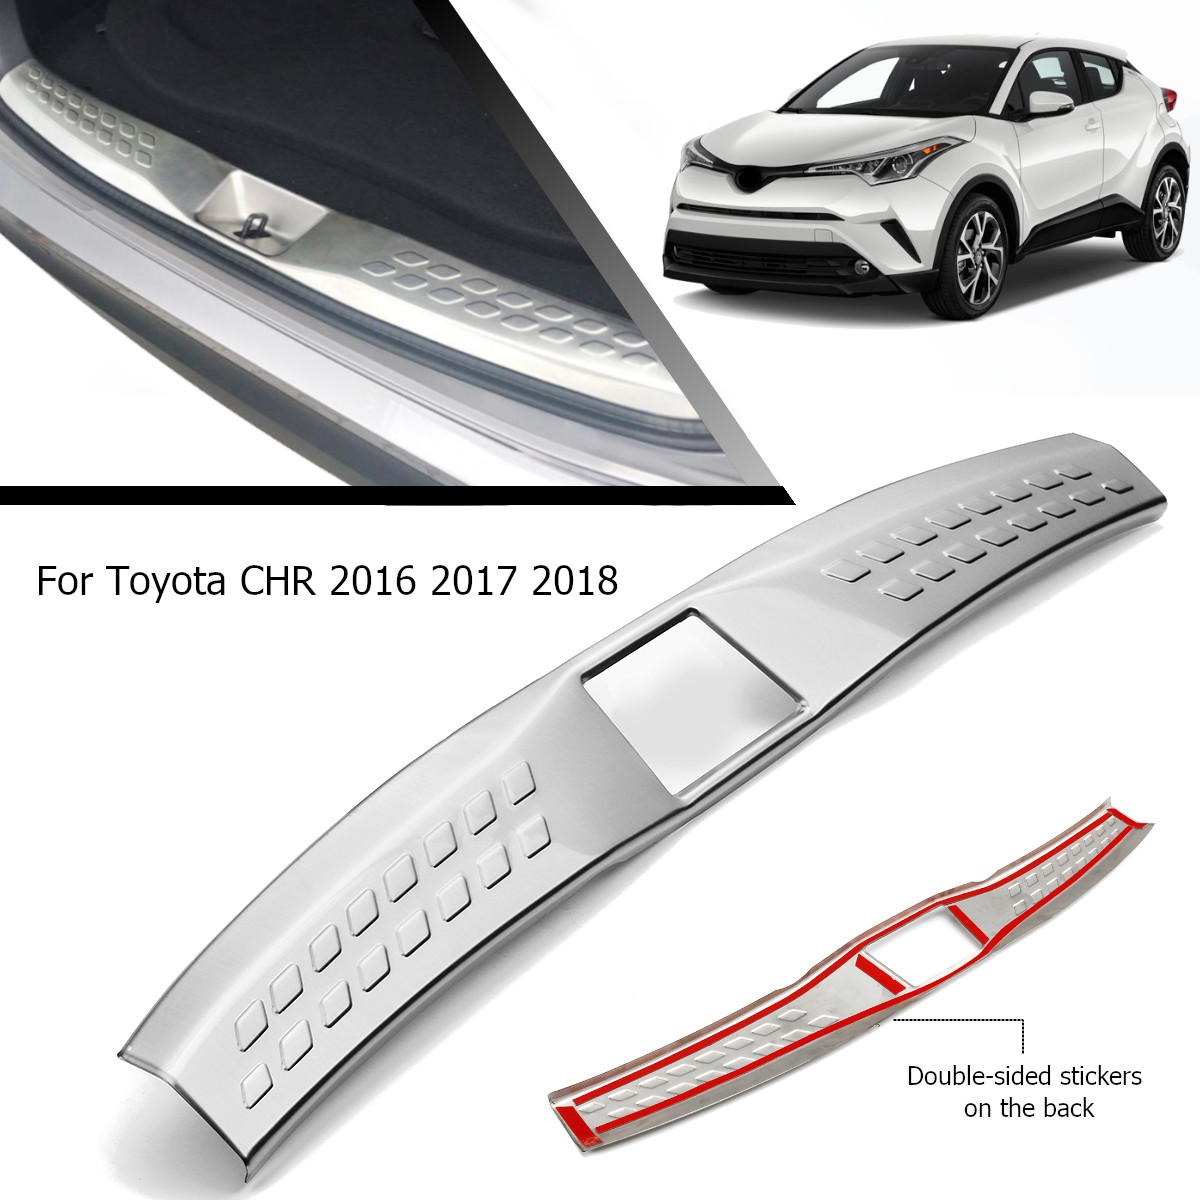 Rear Trunk Pad for Fender Stainless Steel Car Accessories For Toyota C-HR CHR 2016 2017 2018 Rear Bumper Foot Plate